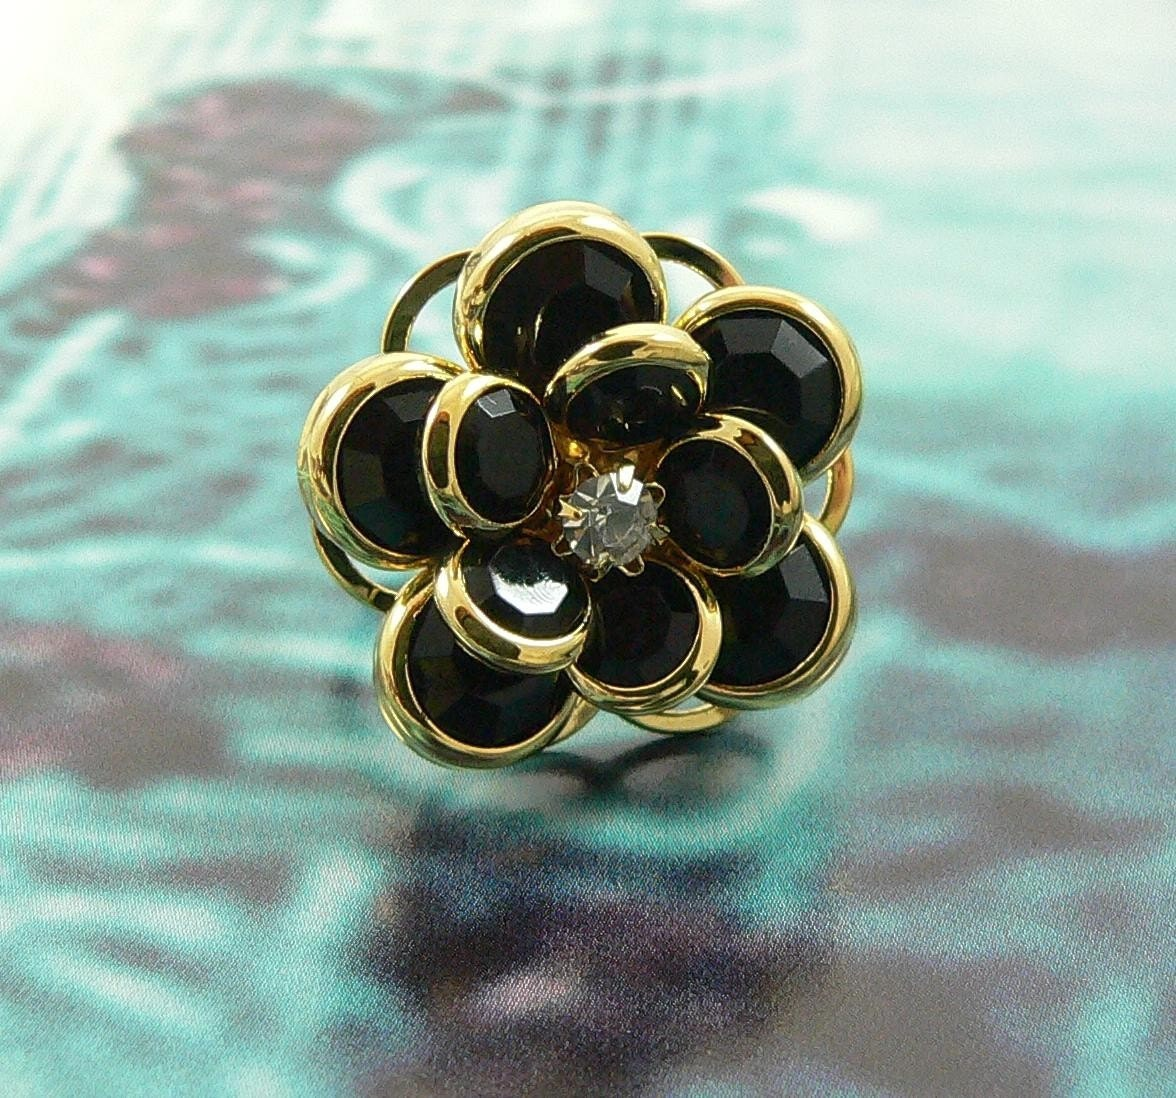 Golden Black Rose Ring.